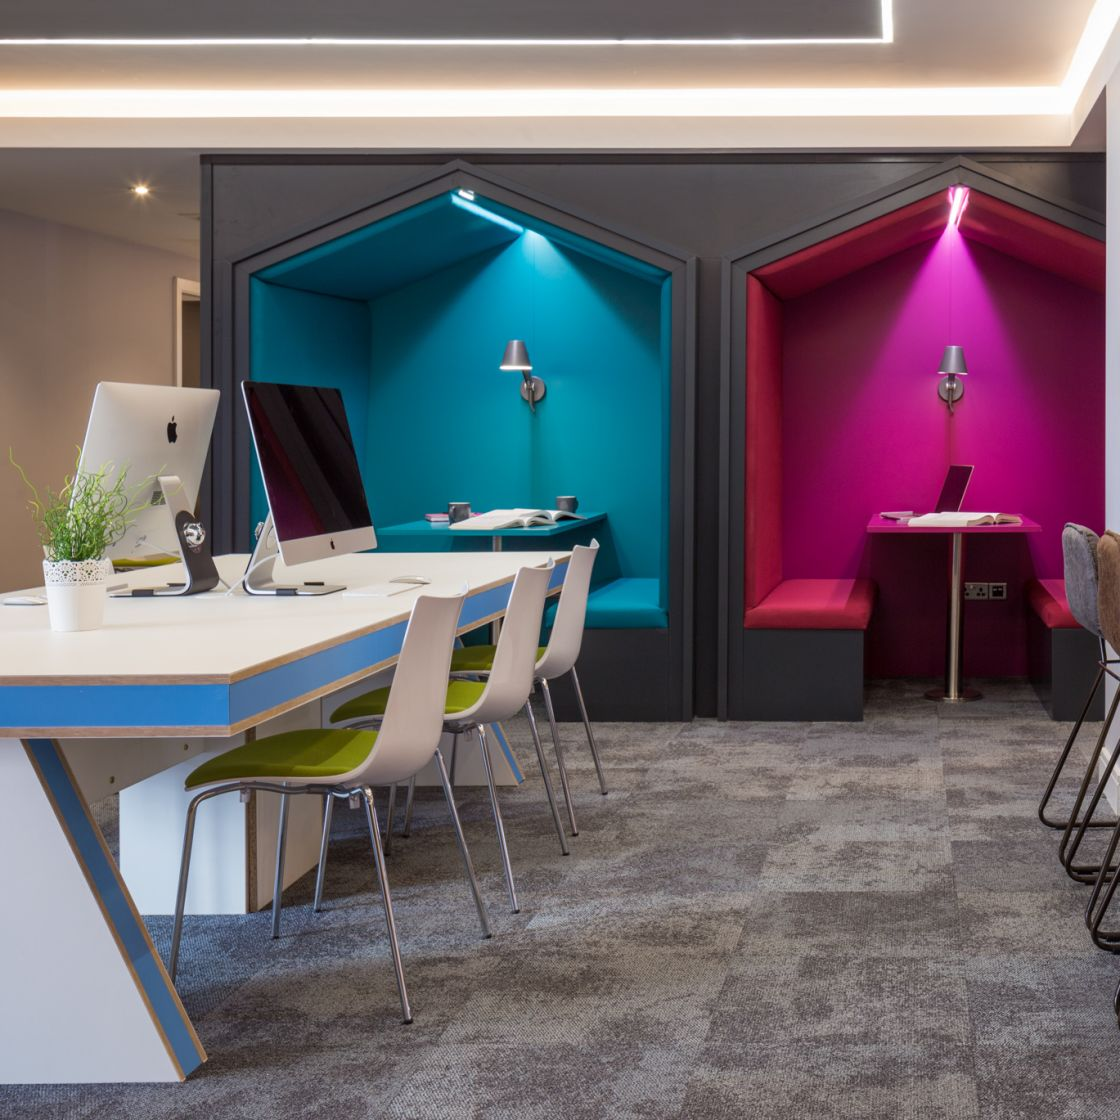 iMacs and Study Booths in the iMac lounge at IconInc, The Glassworks. Student Accommodation in Leeds